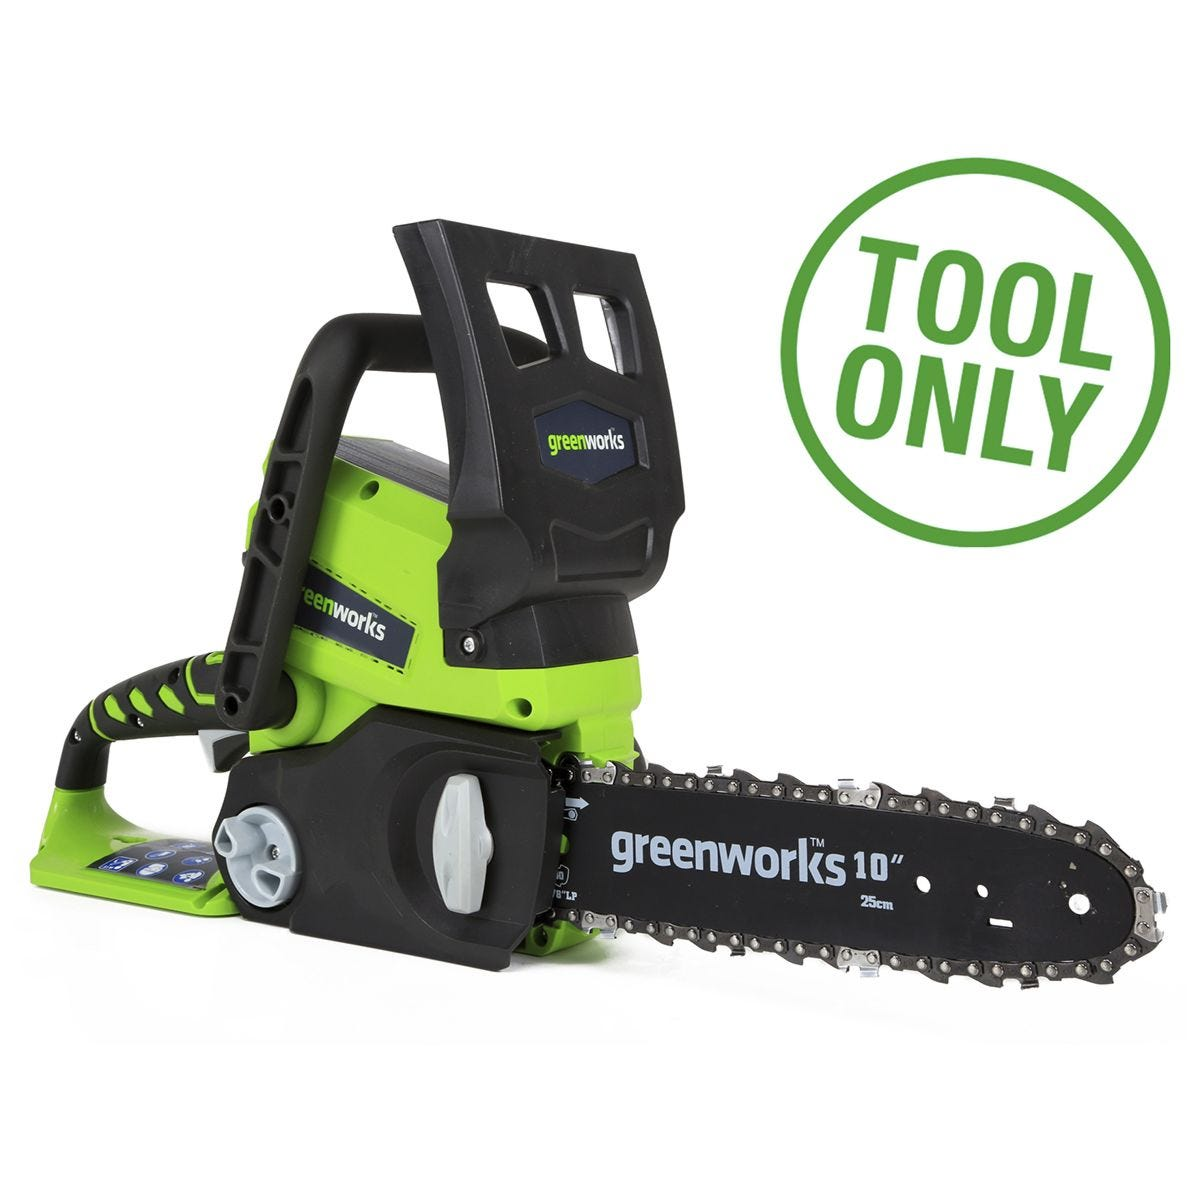 Greenworks 24v 25cm Chainsaw (Tool Only)